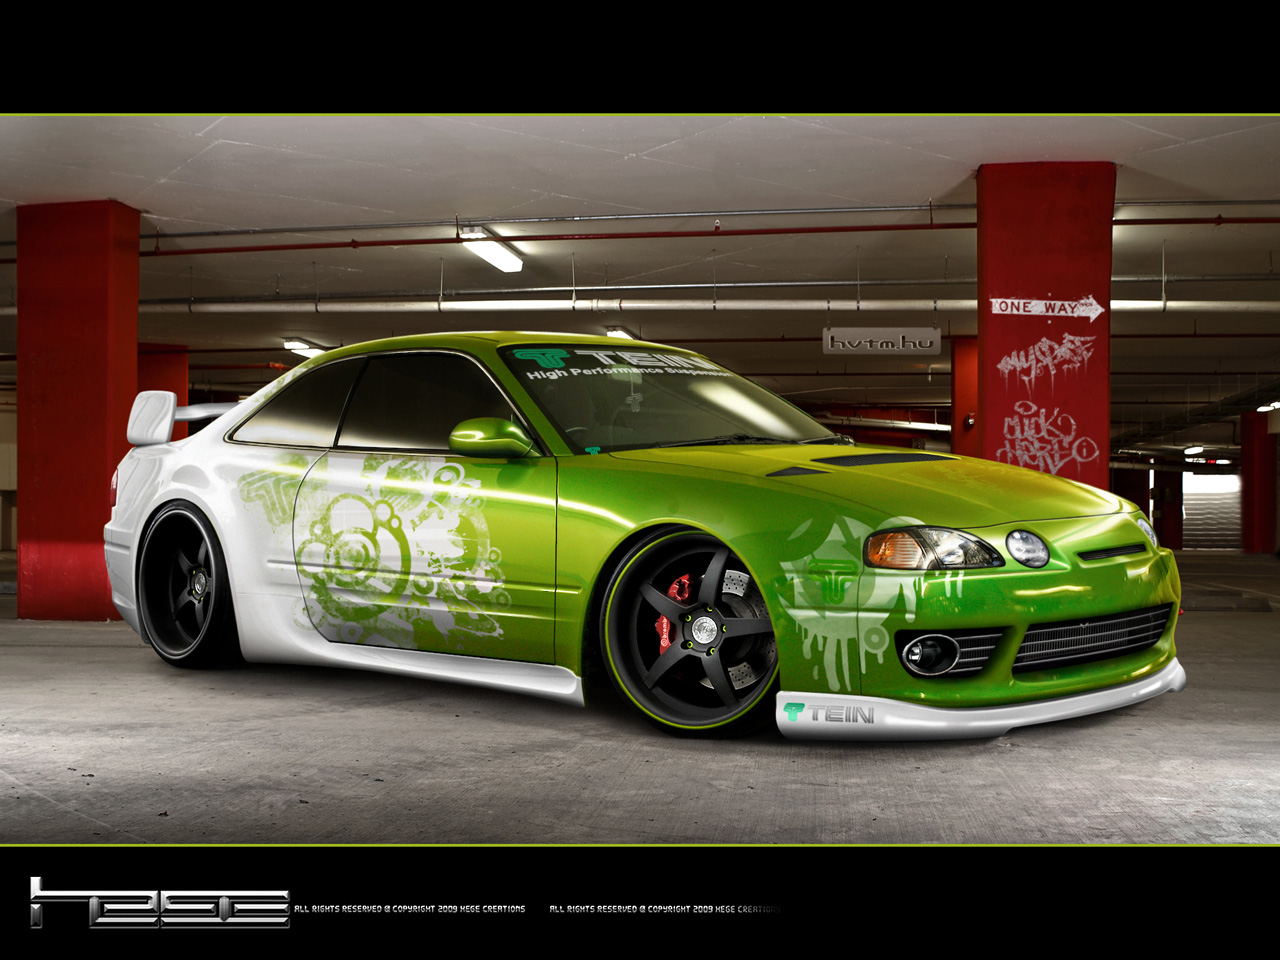 Free Wallpapers Collection: Fantastic Animated Cars Wallpapers